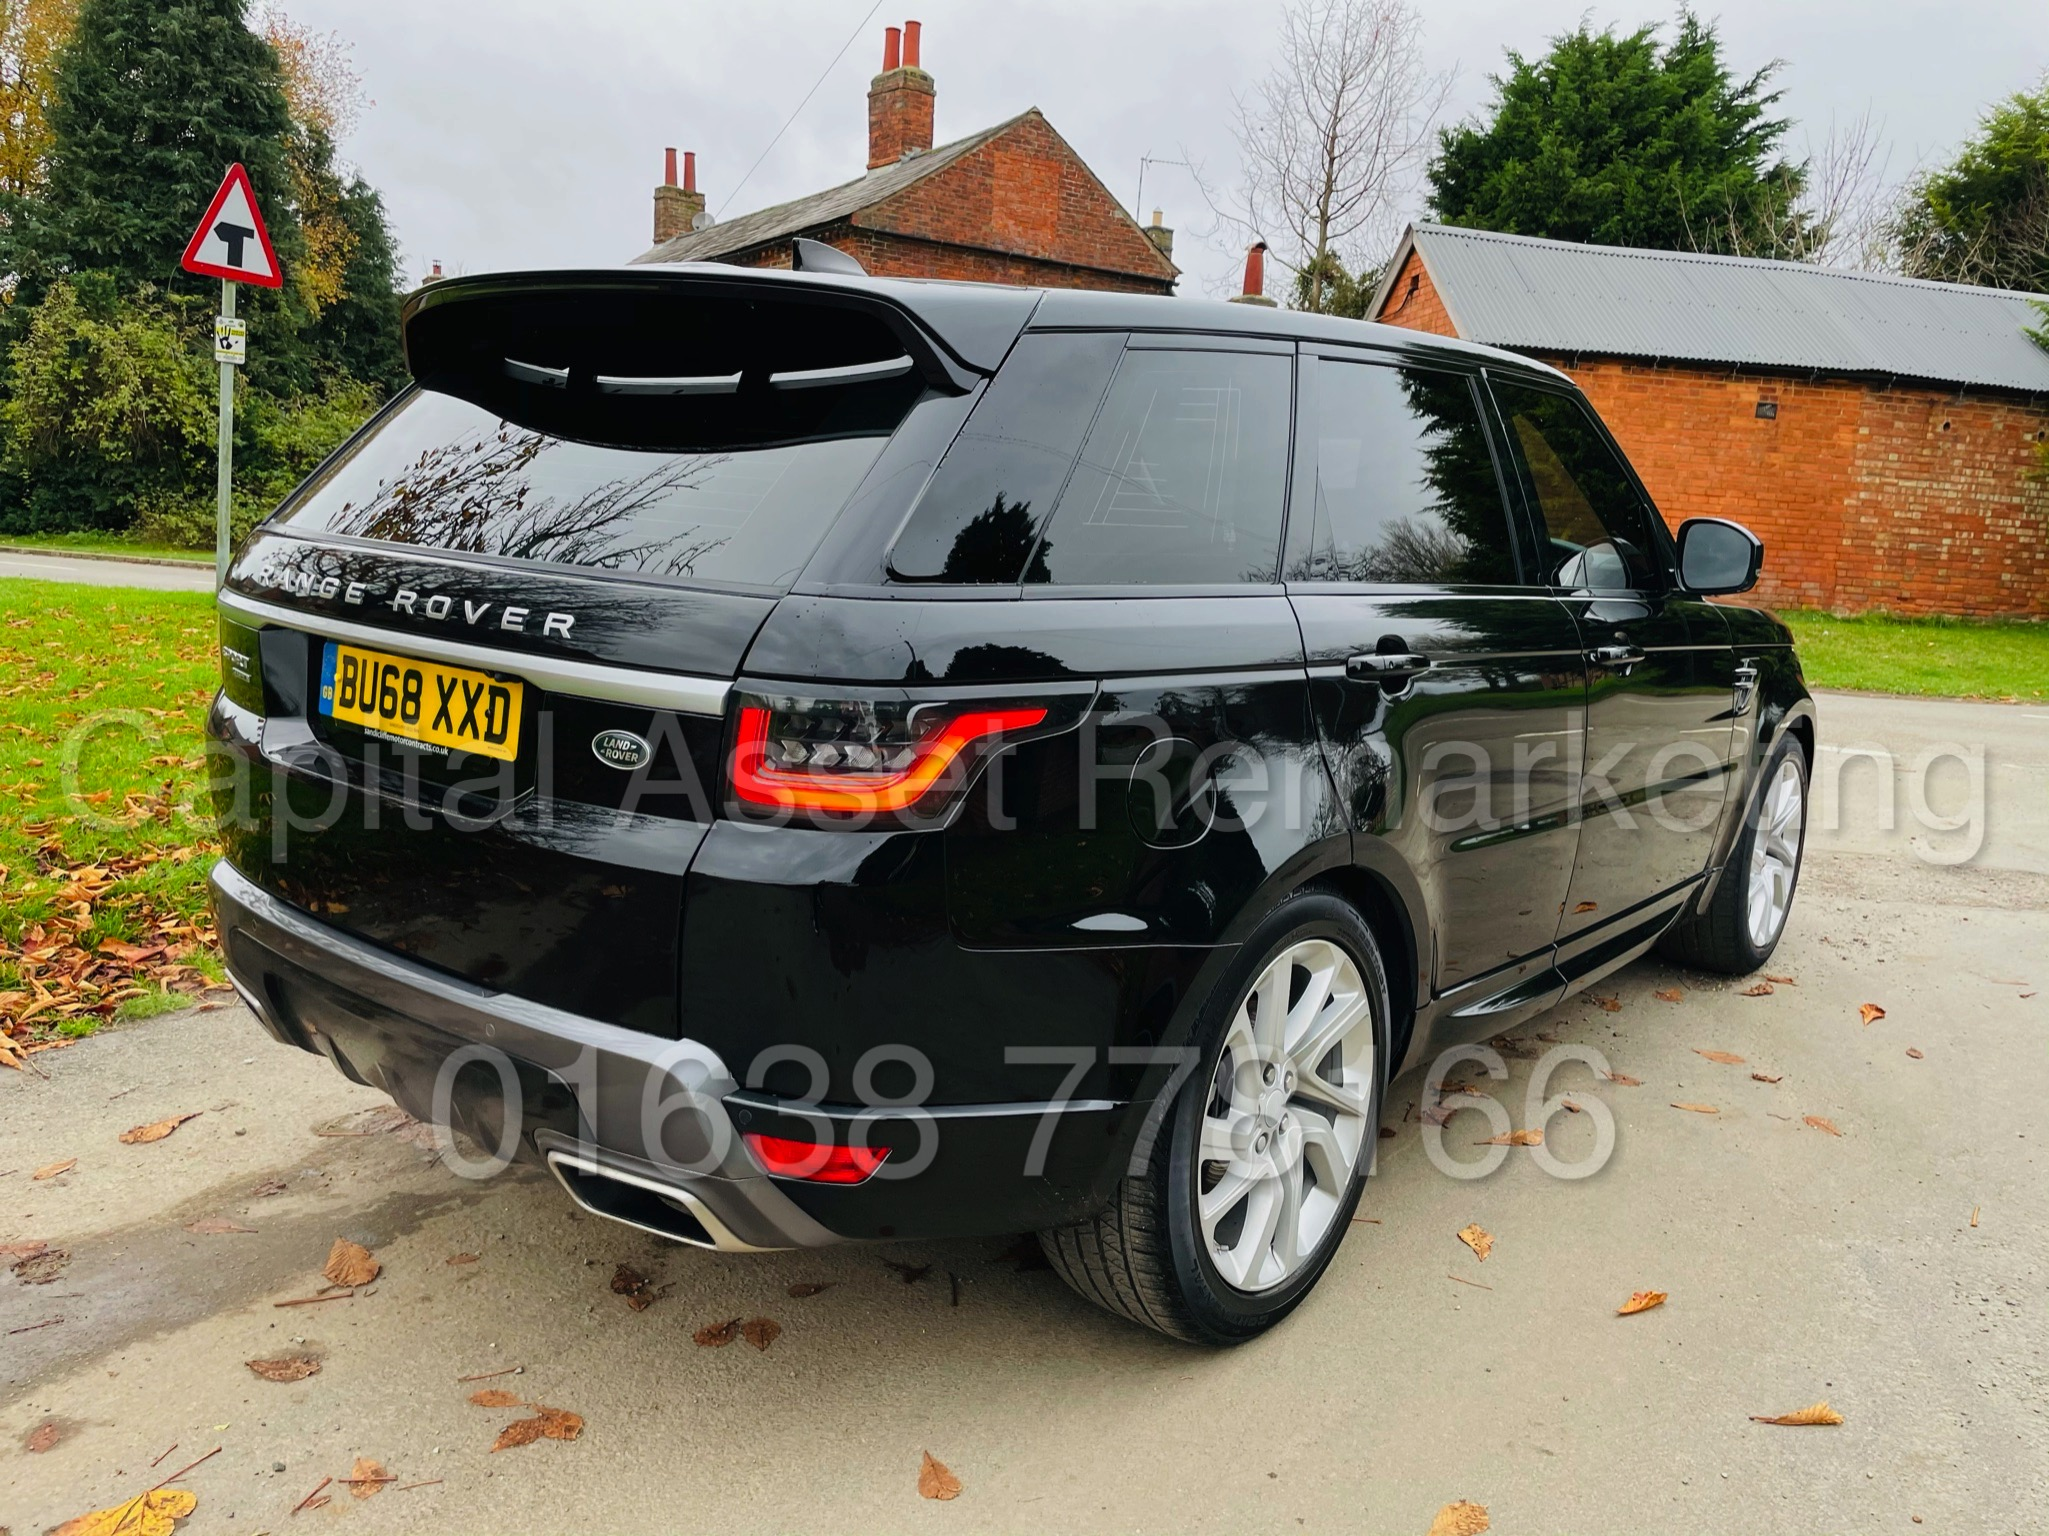 RANGE ROVER SPORT *HSE EDITION* SUV (2019 MODEL) '3.0 SDV6 - 306 BHP - 8 SPEED AUTO' *FULLY LOADED* - Image 12 of 56